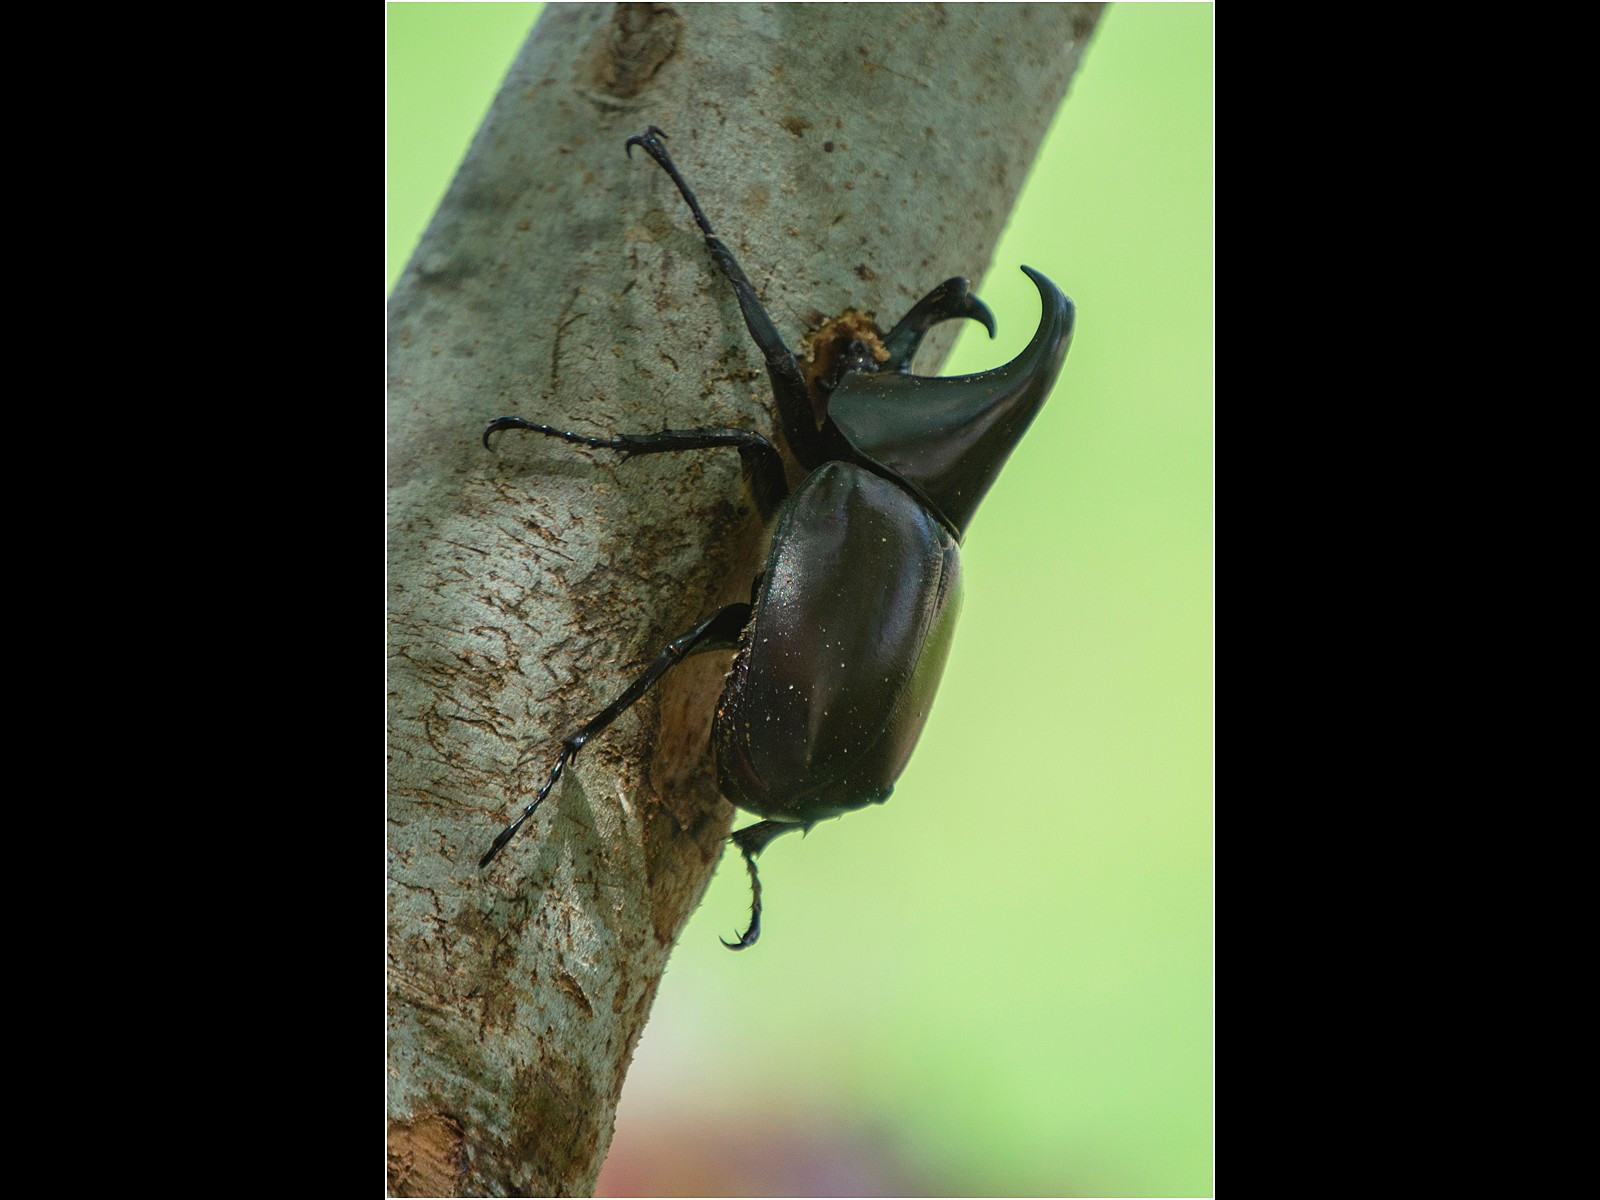 A Rhino beetle in a Queensland garden